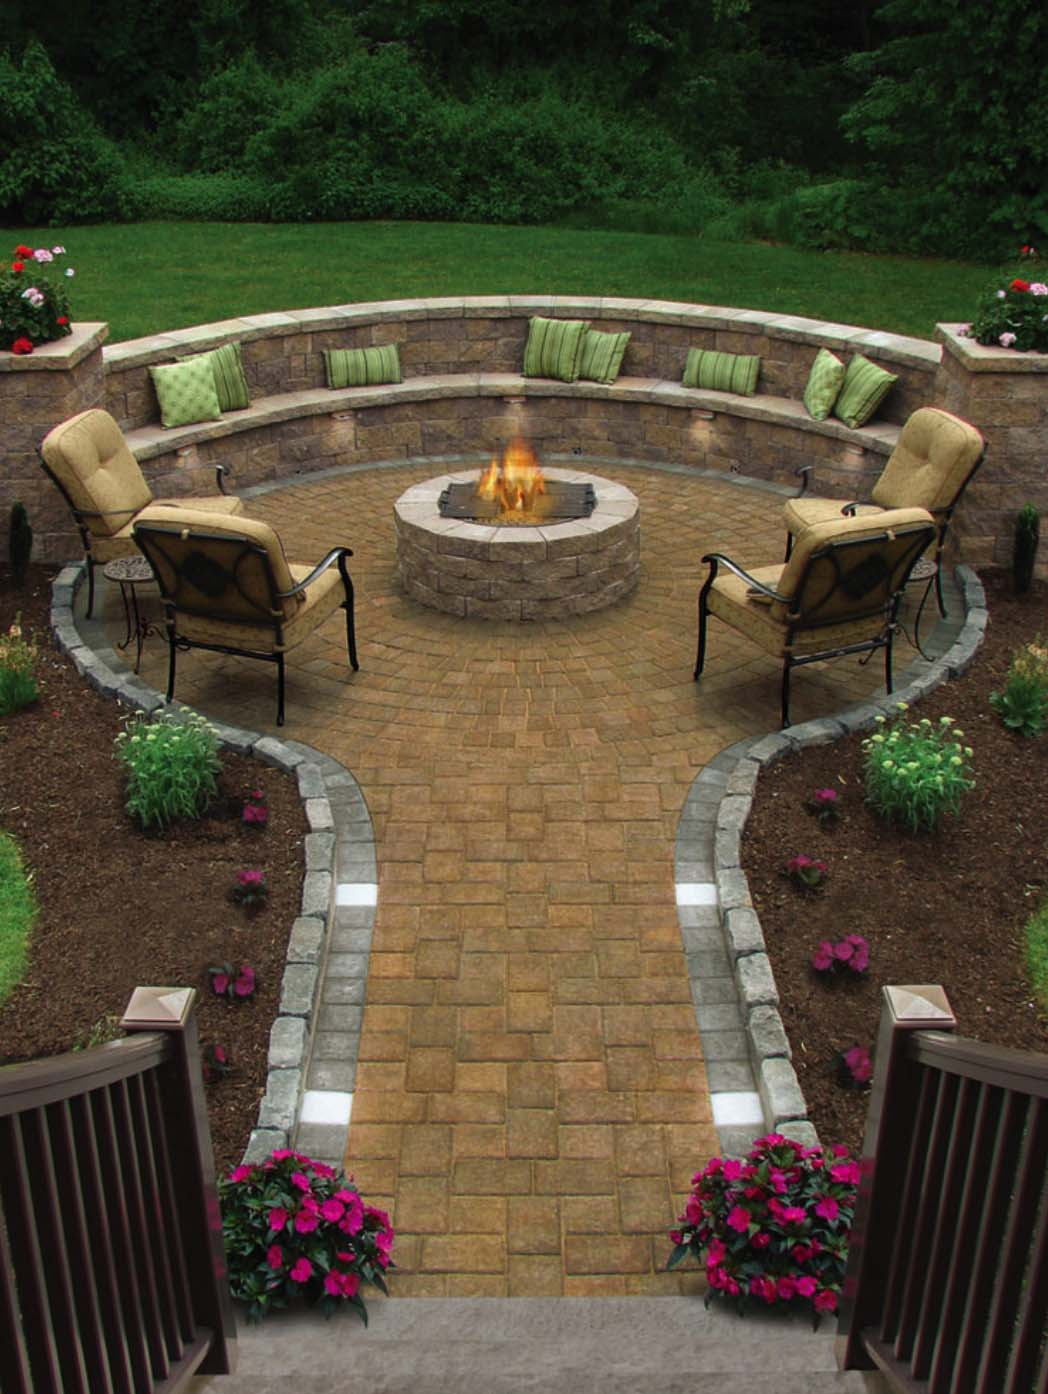 44 traditional outdoor patio designs to capture your imagination VITLMHK